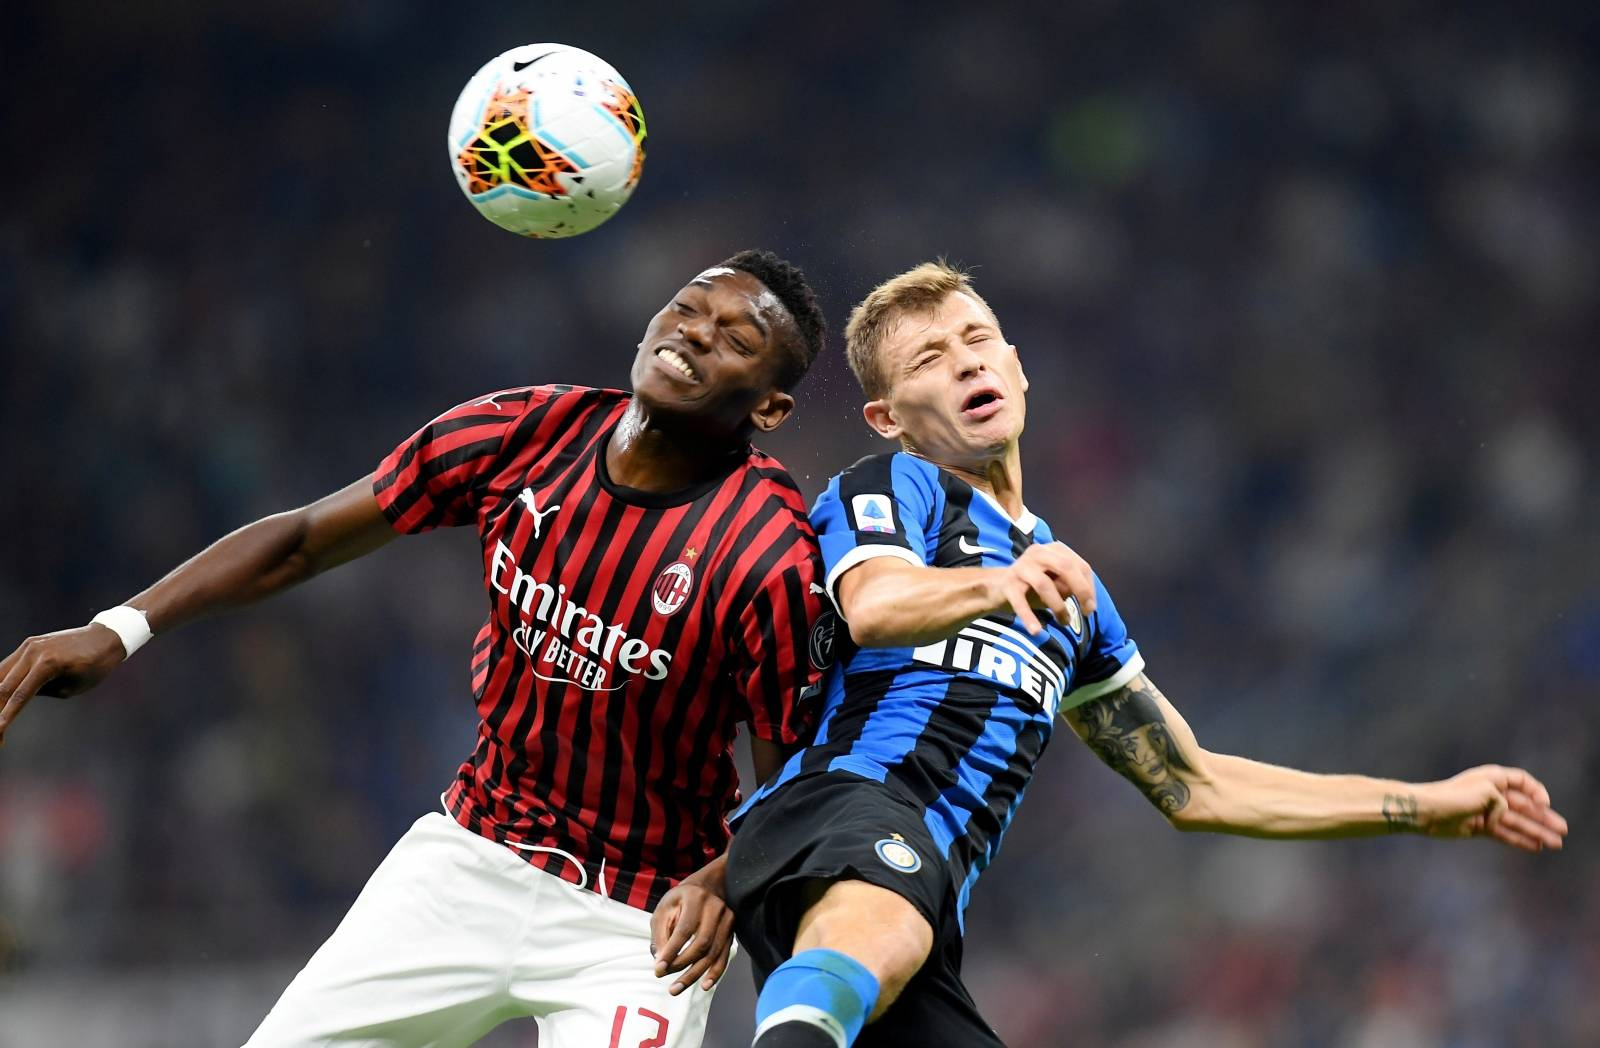 FILE PHOTO: Serie A - AC Milan v Inter Milan